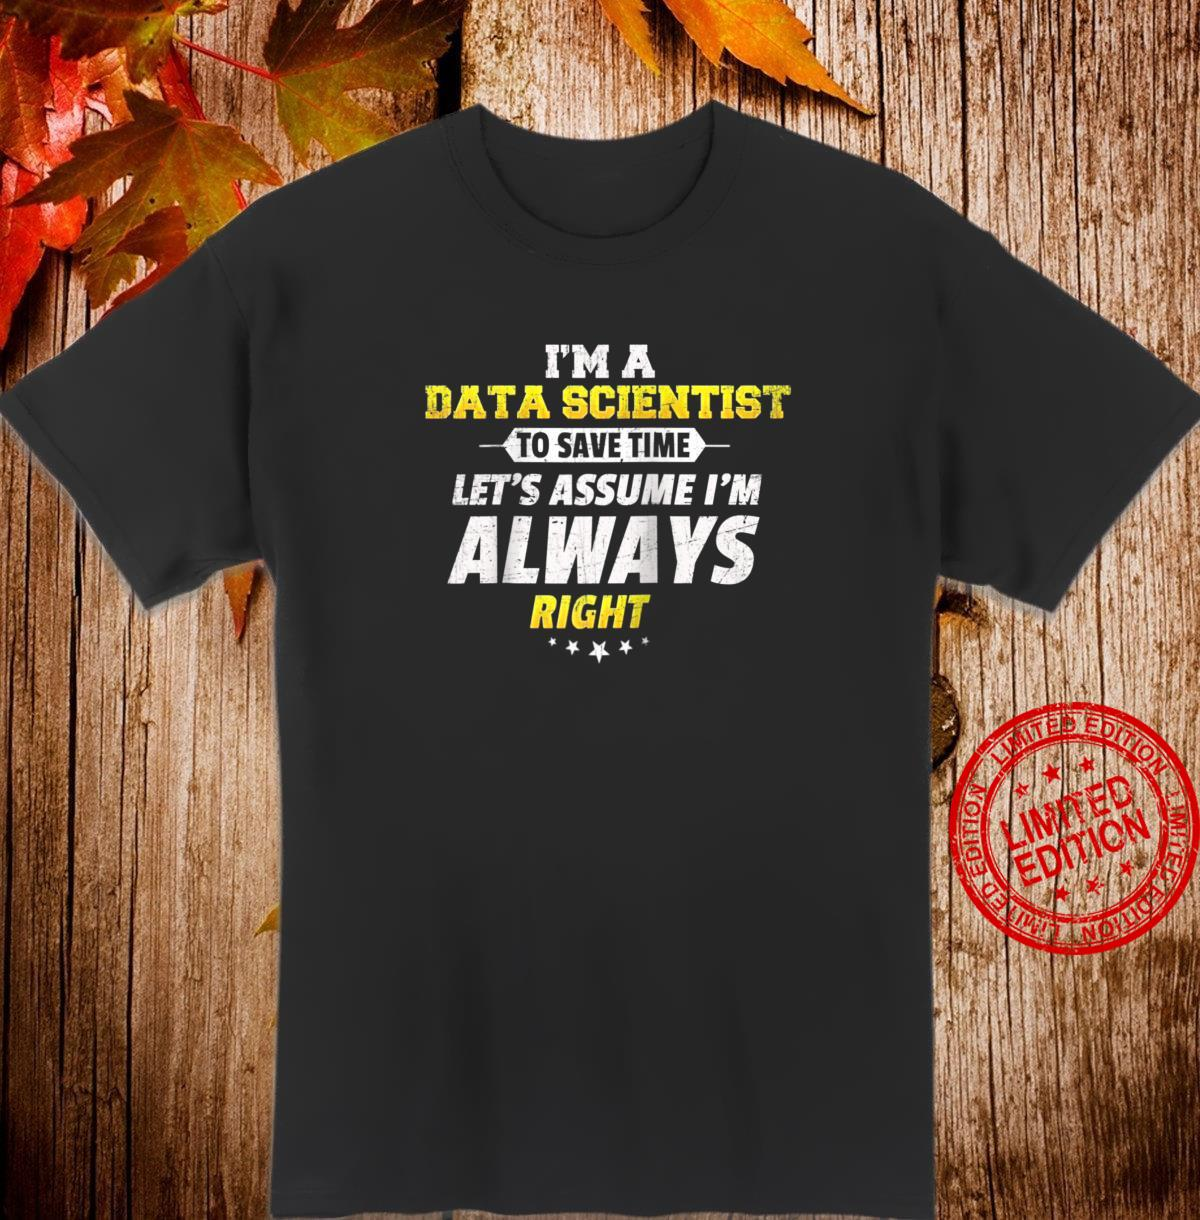 I'm a Data Scientist, Scientist, Science Shirt